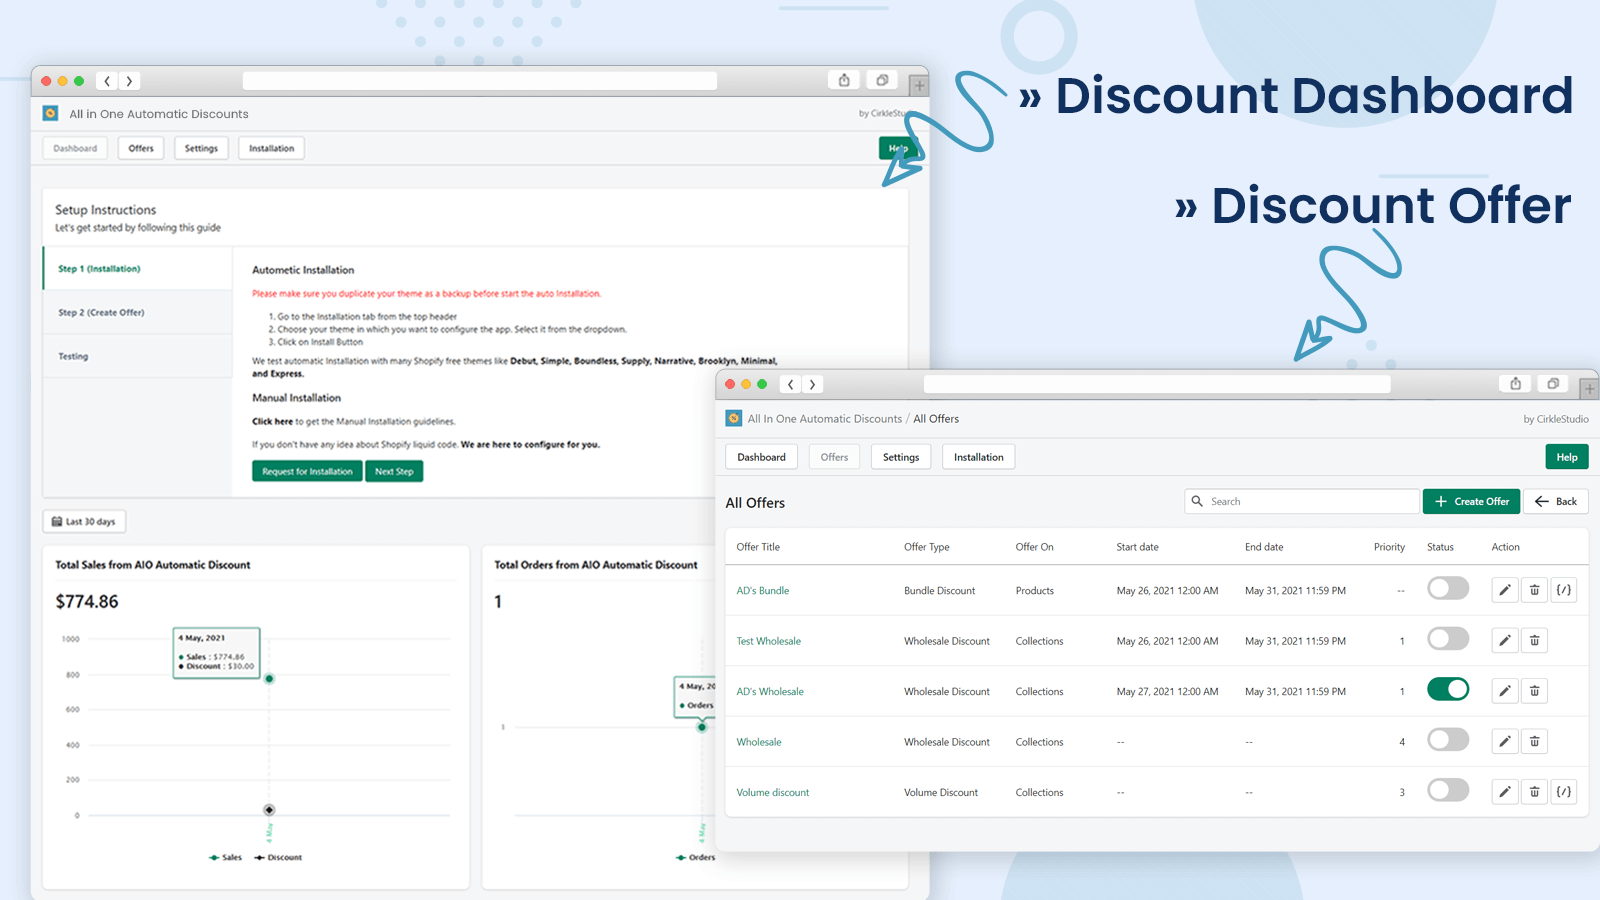 All In One Automatic Discounts Dashboard and List of Offers